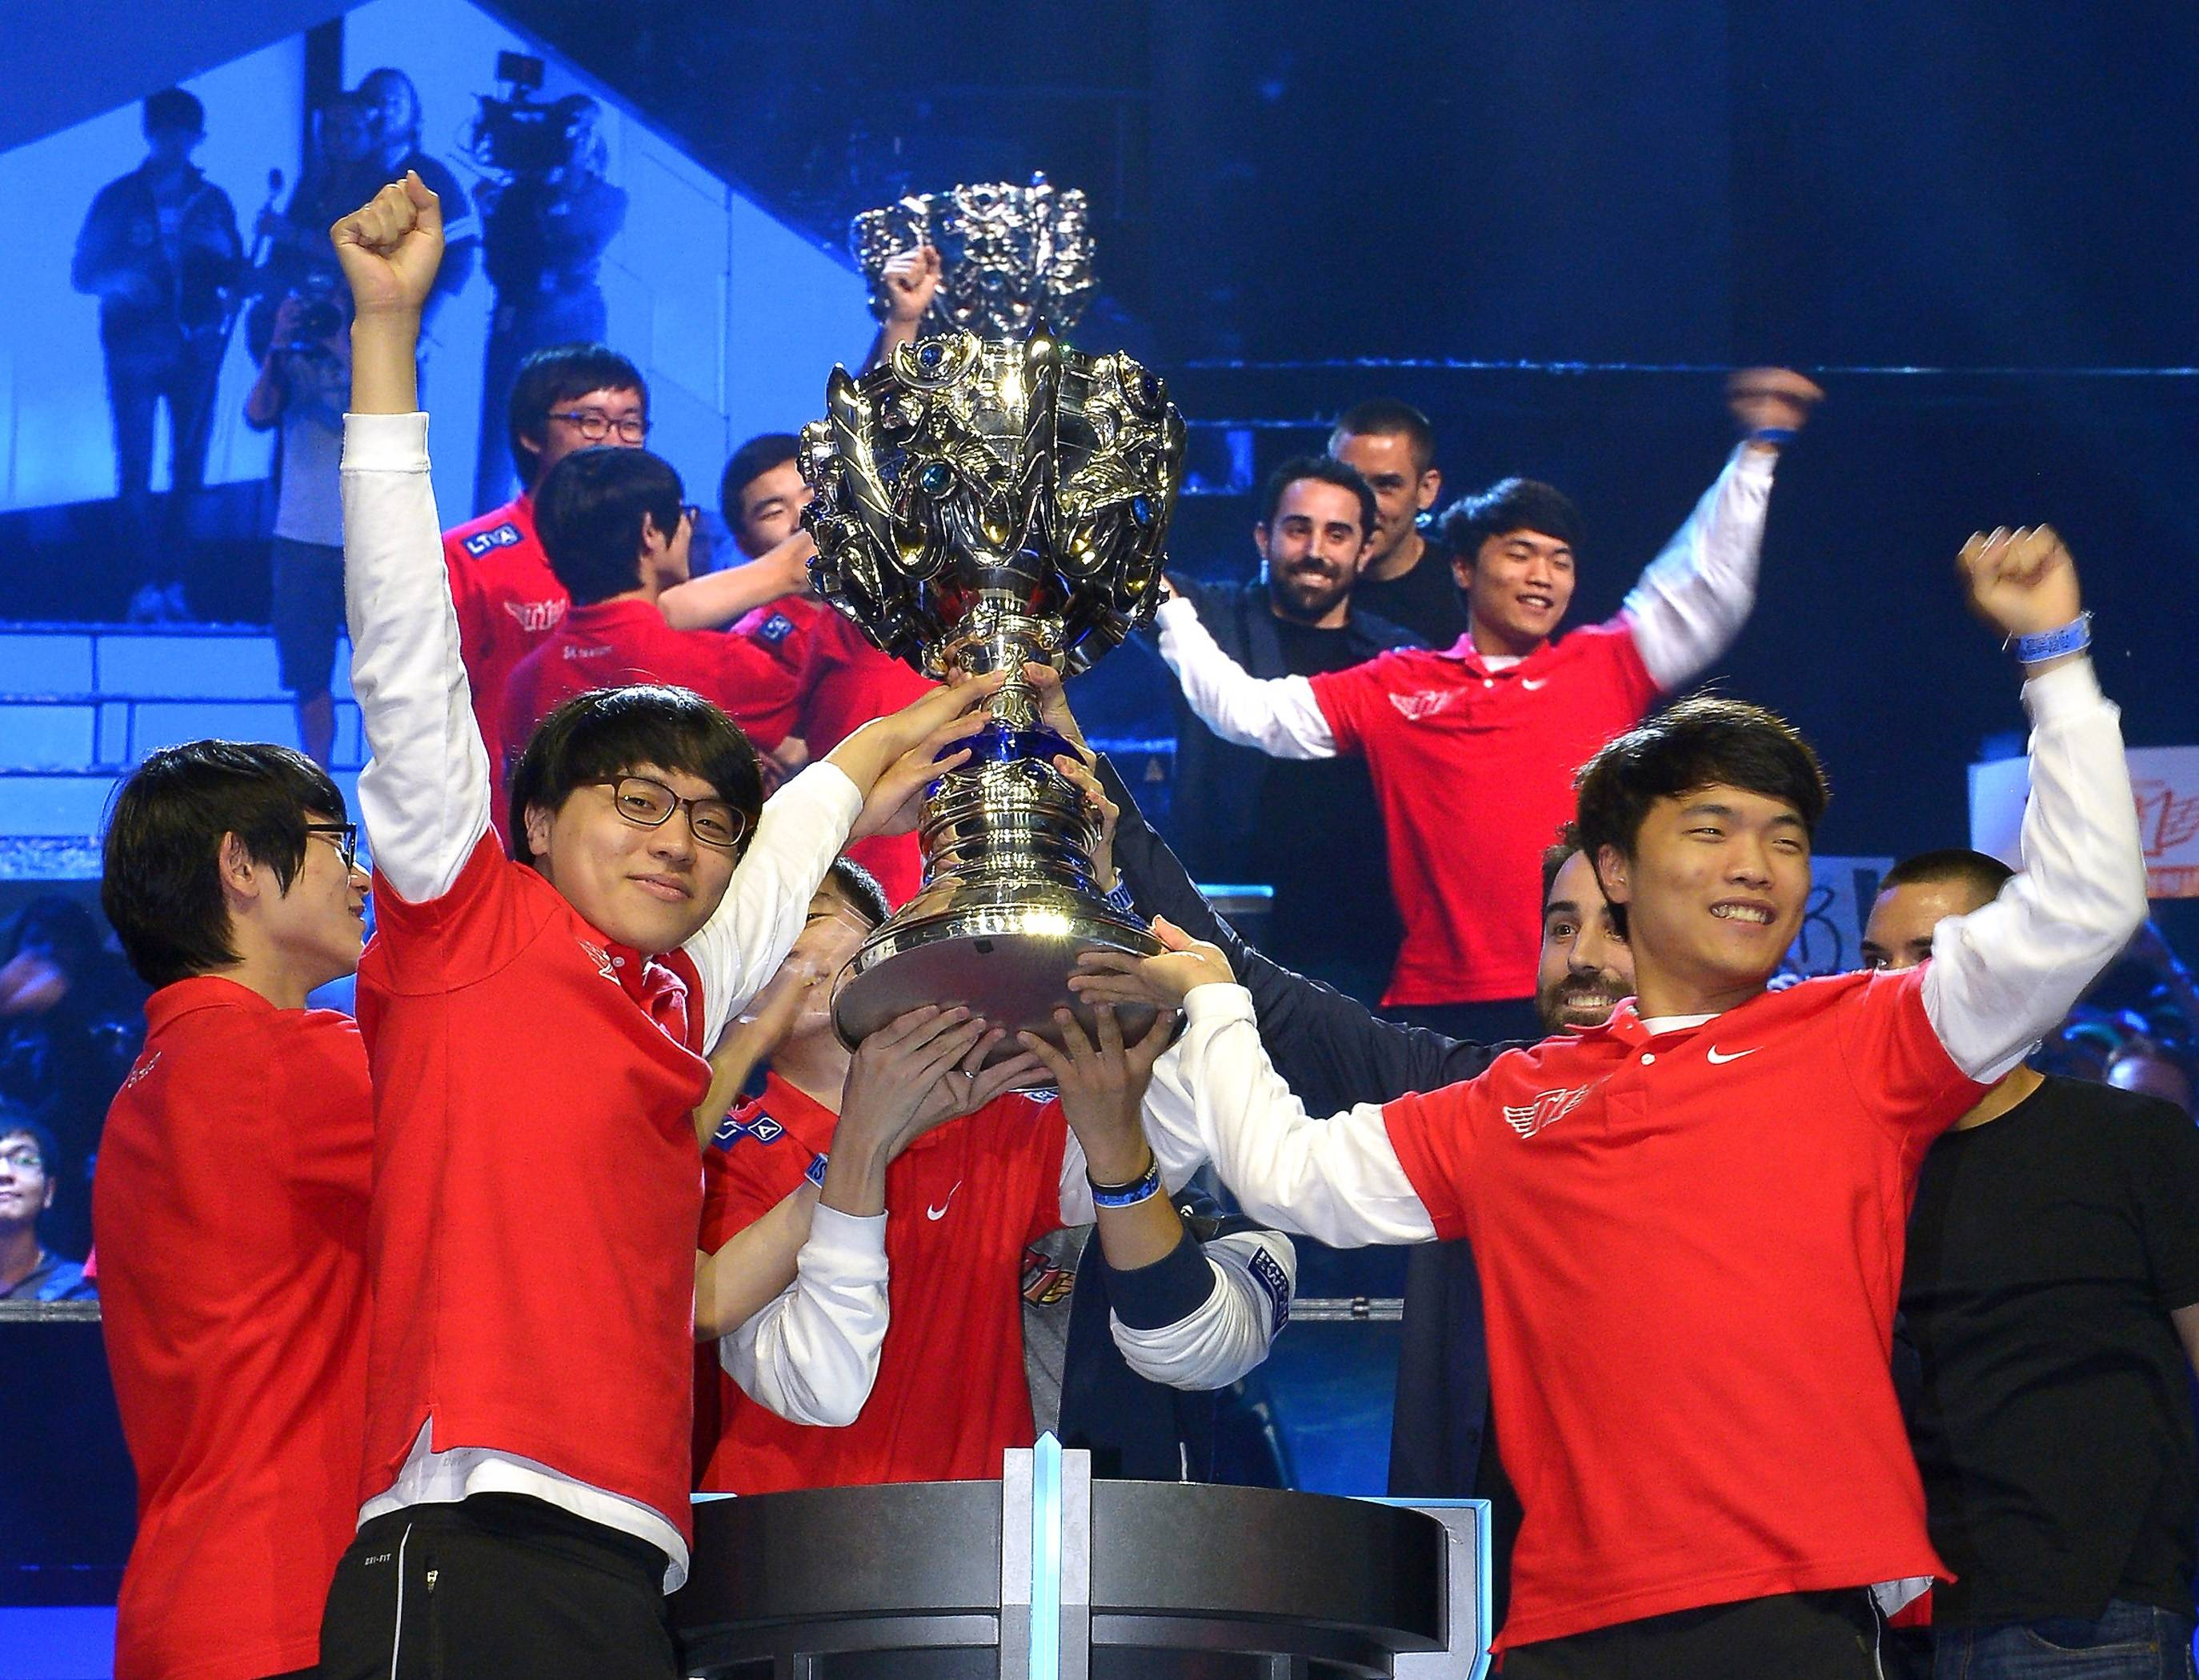 Members of Korea's SK Telecom T1 team celebrate with their trophy after defeating China's Royal Club at the League of Legends Season 3 World Championship Final last October in Los Angeles.